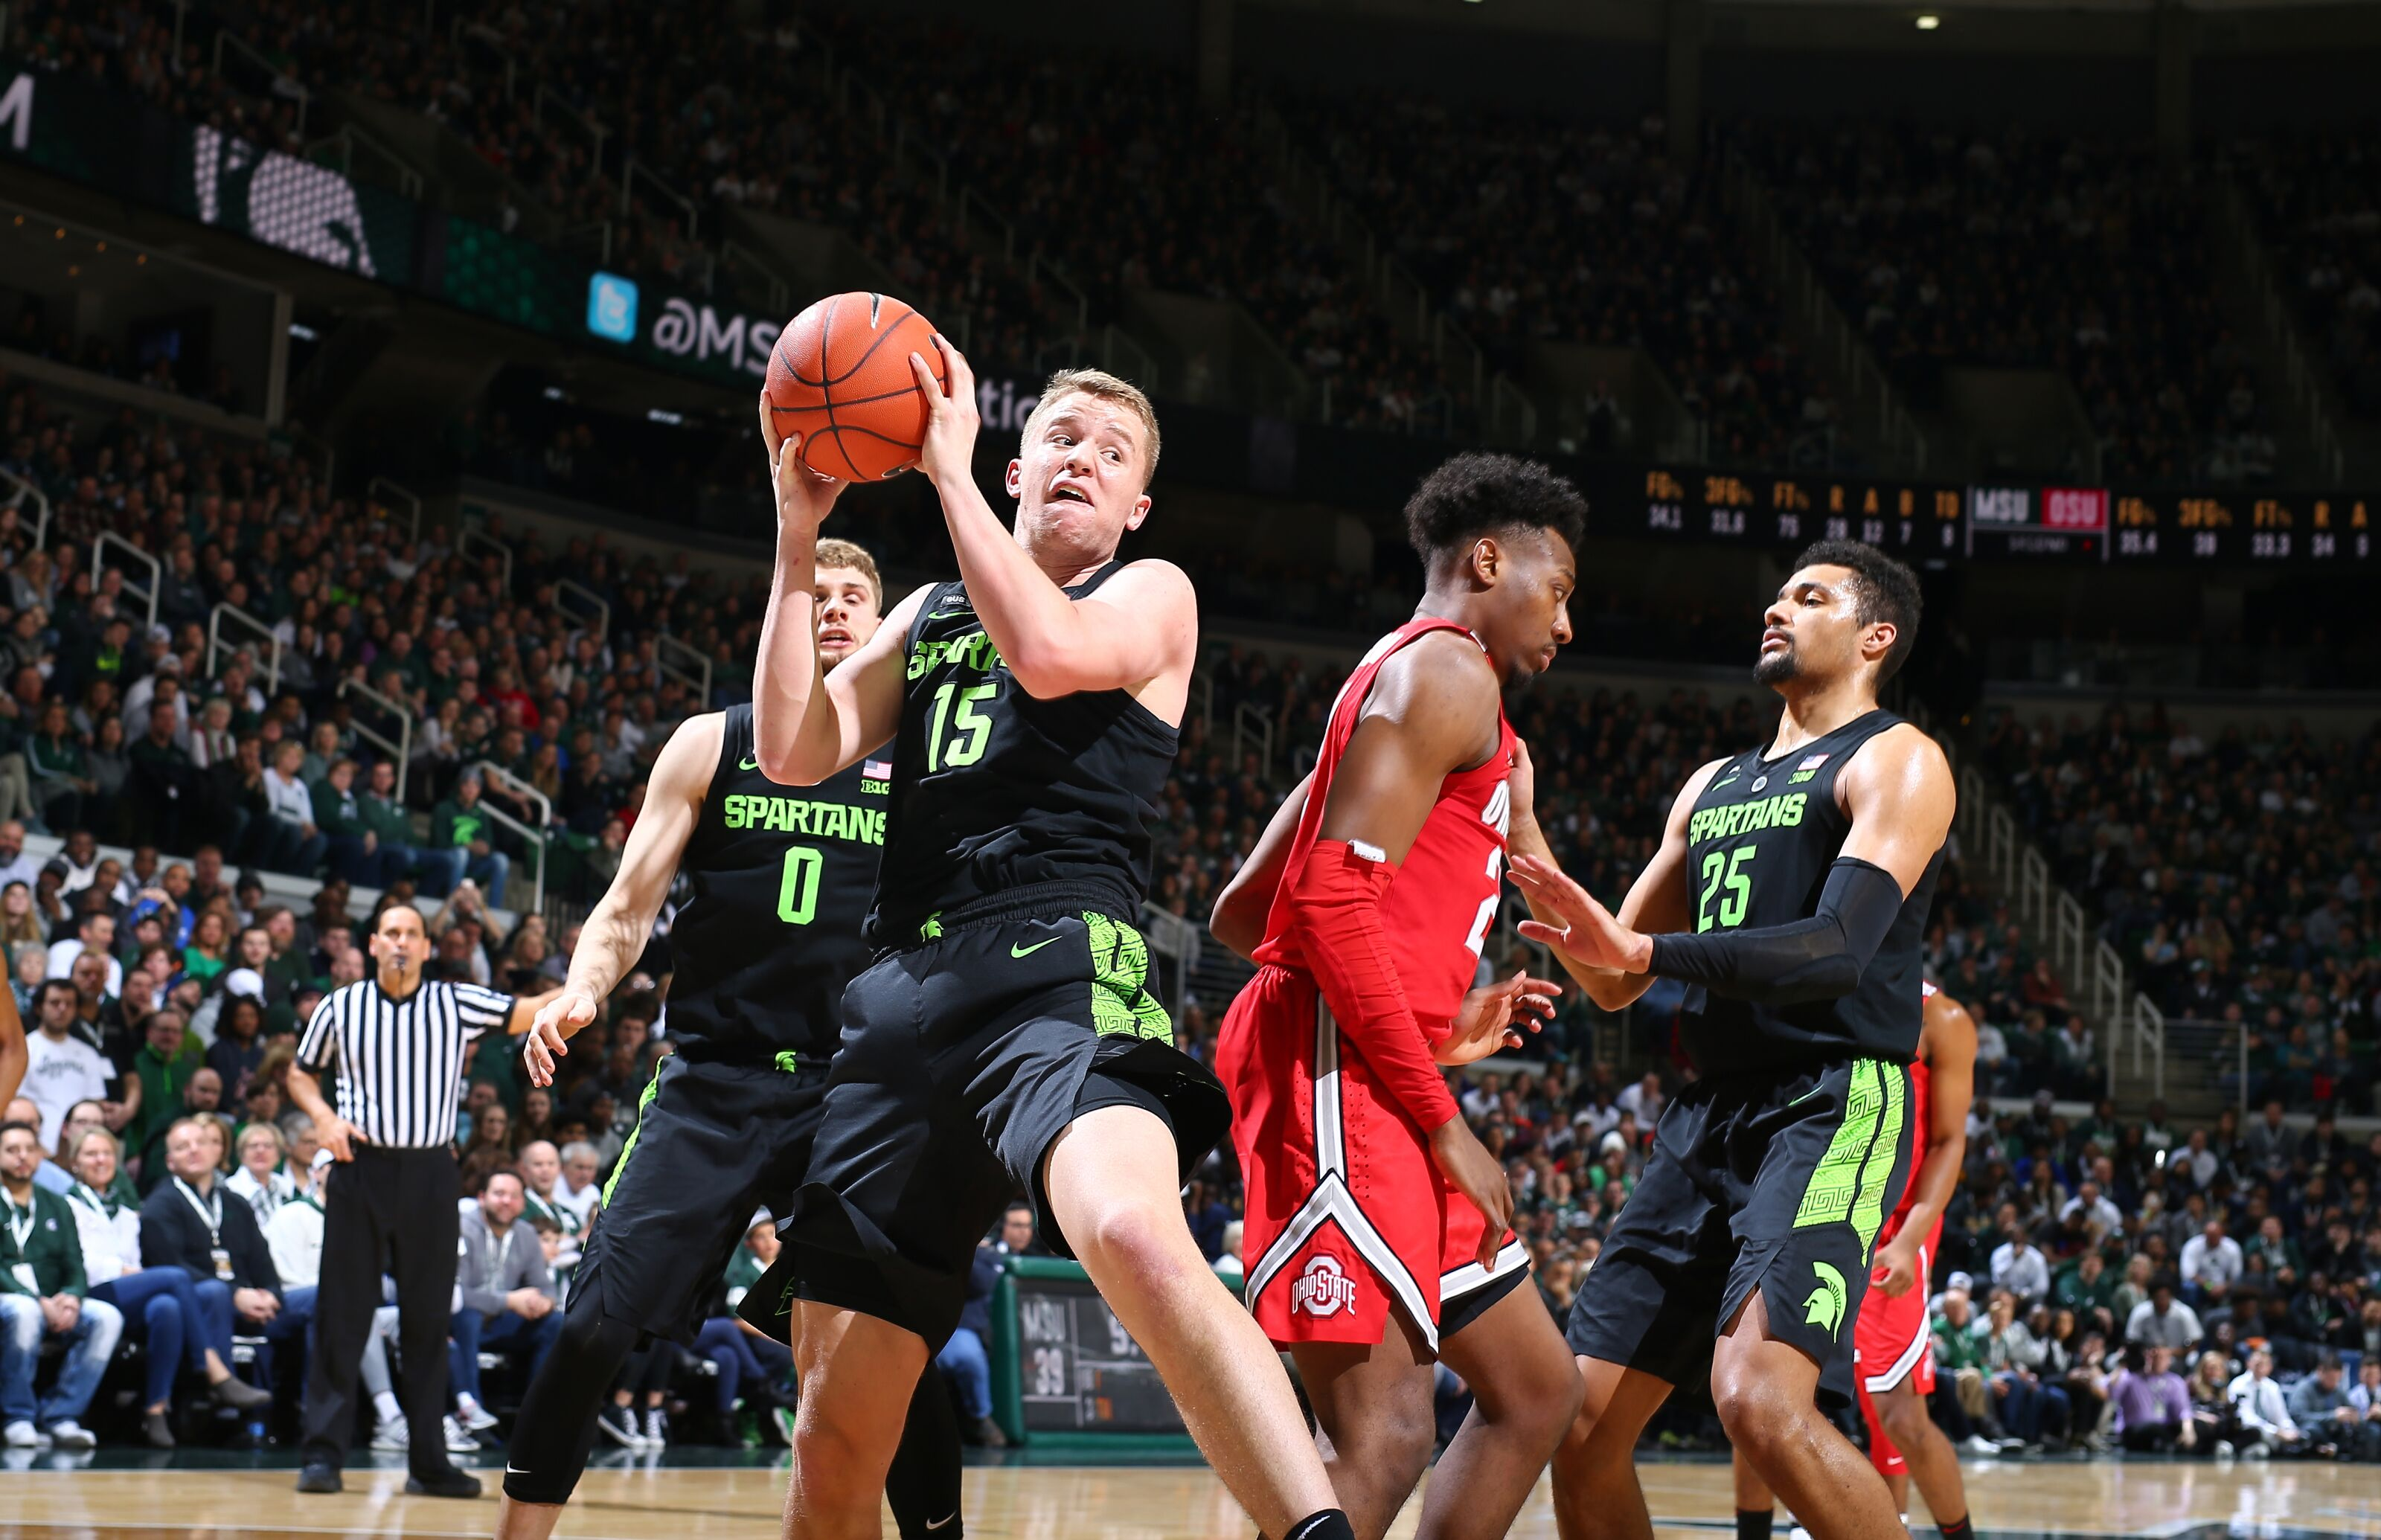 Michigan State Basketball: Who should start at PF in 2019-20?